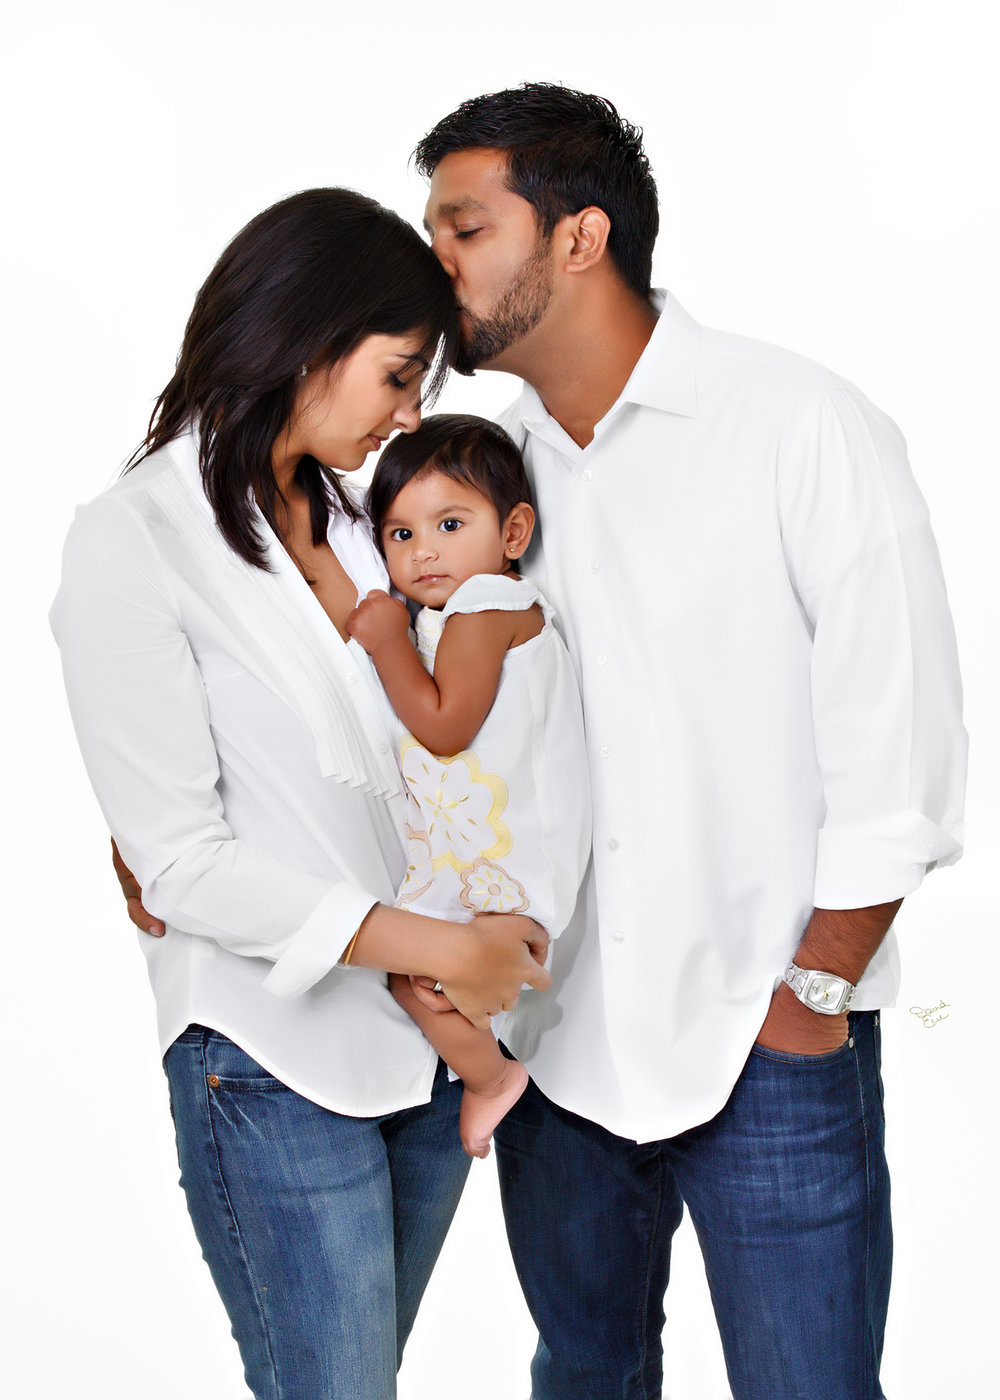 Portrait of Family of  three with young child on a white background in the studio